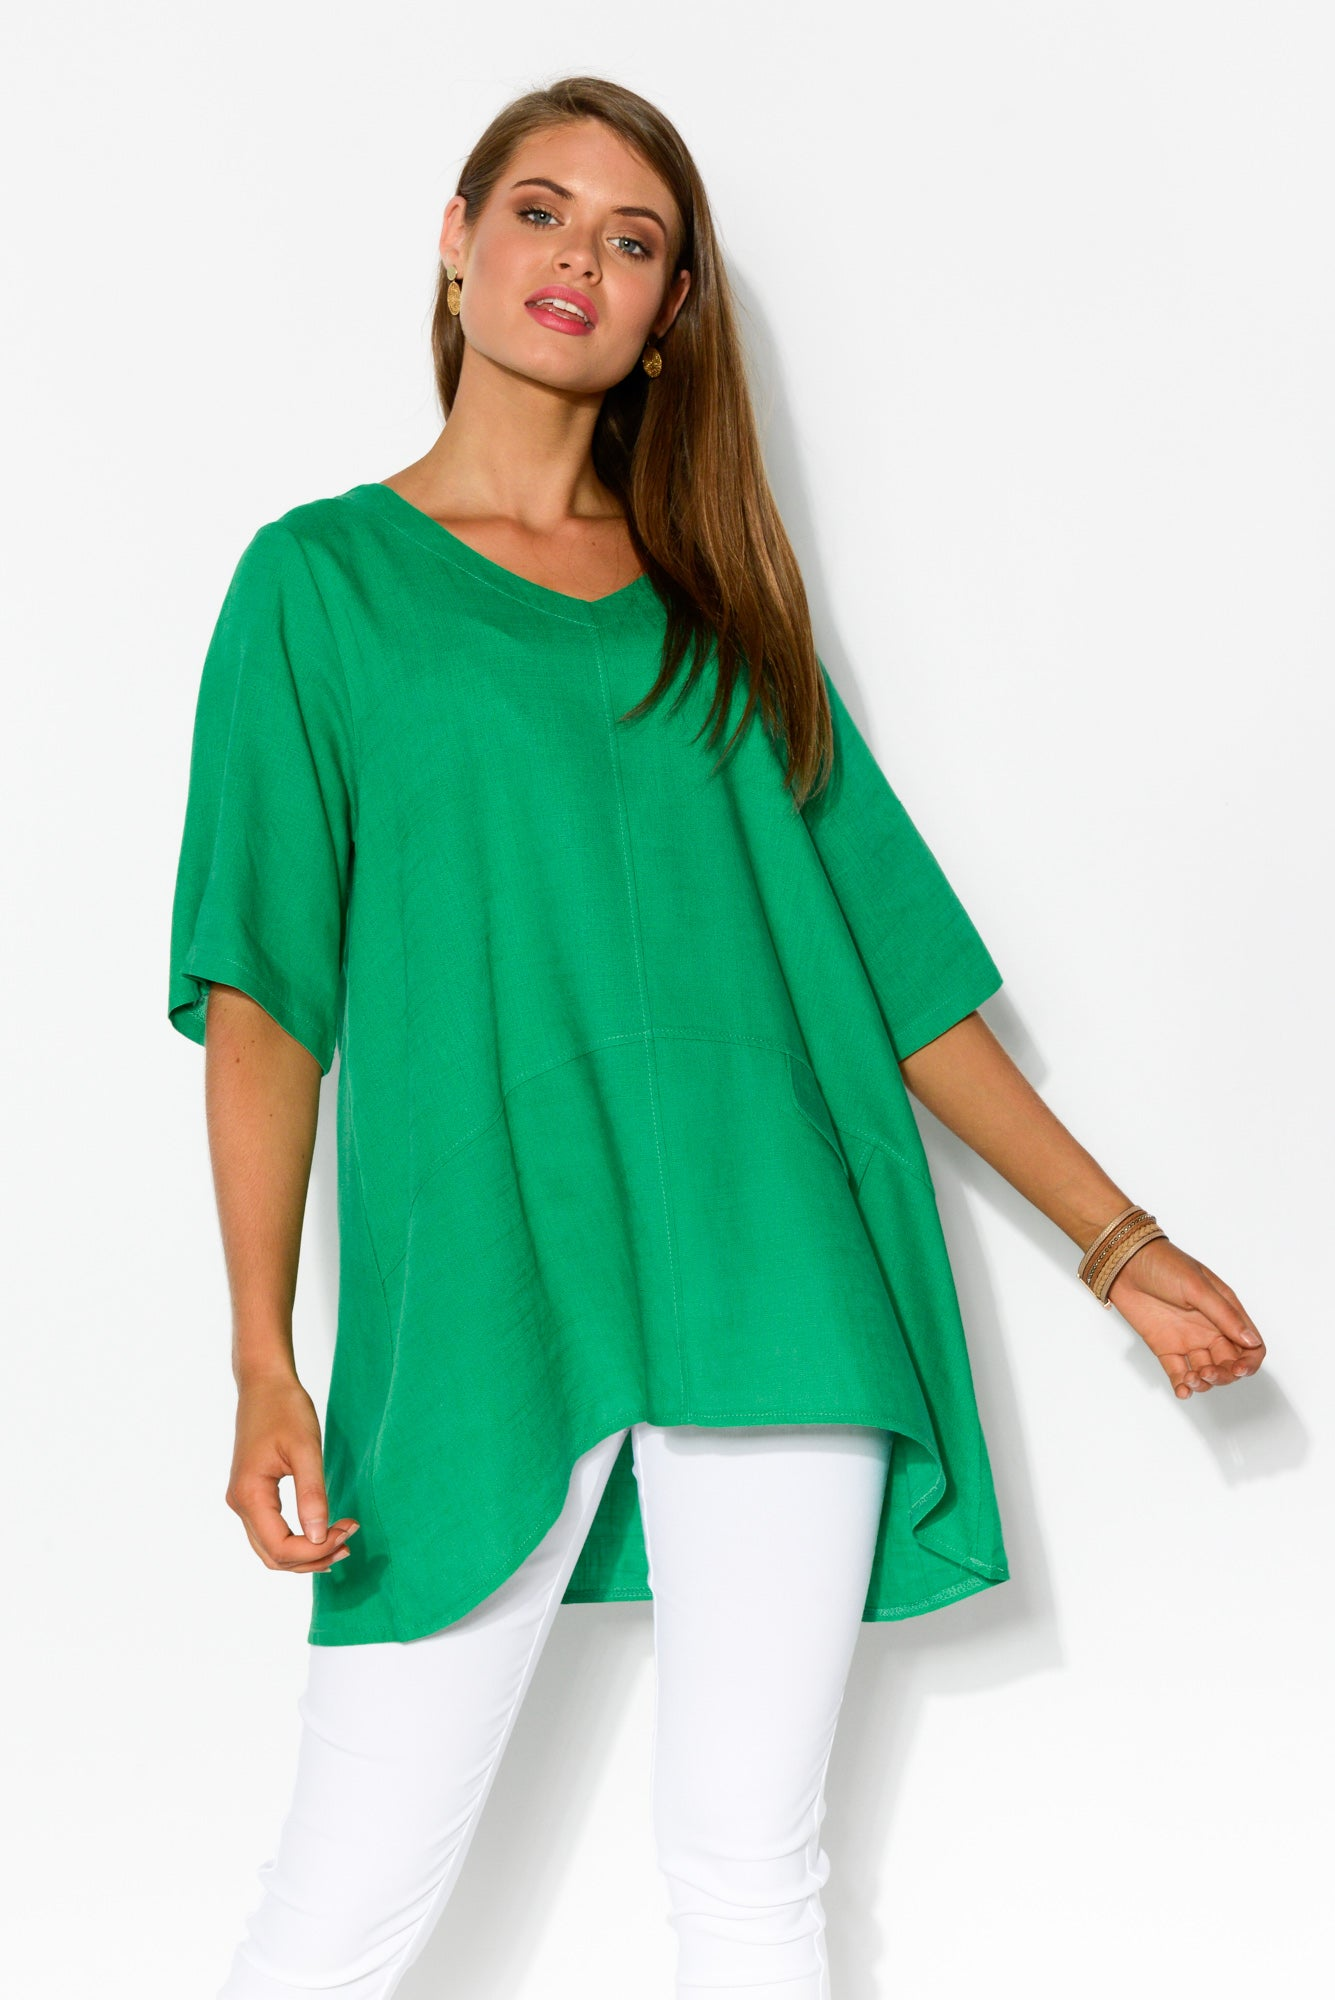 Neptune Green Linen Cotton Top - Blue Bungalow